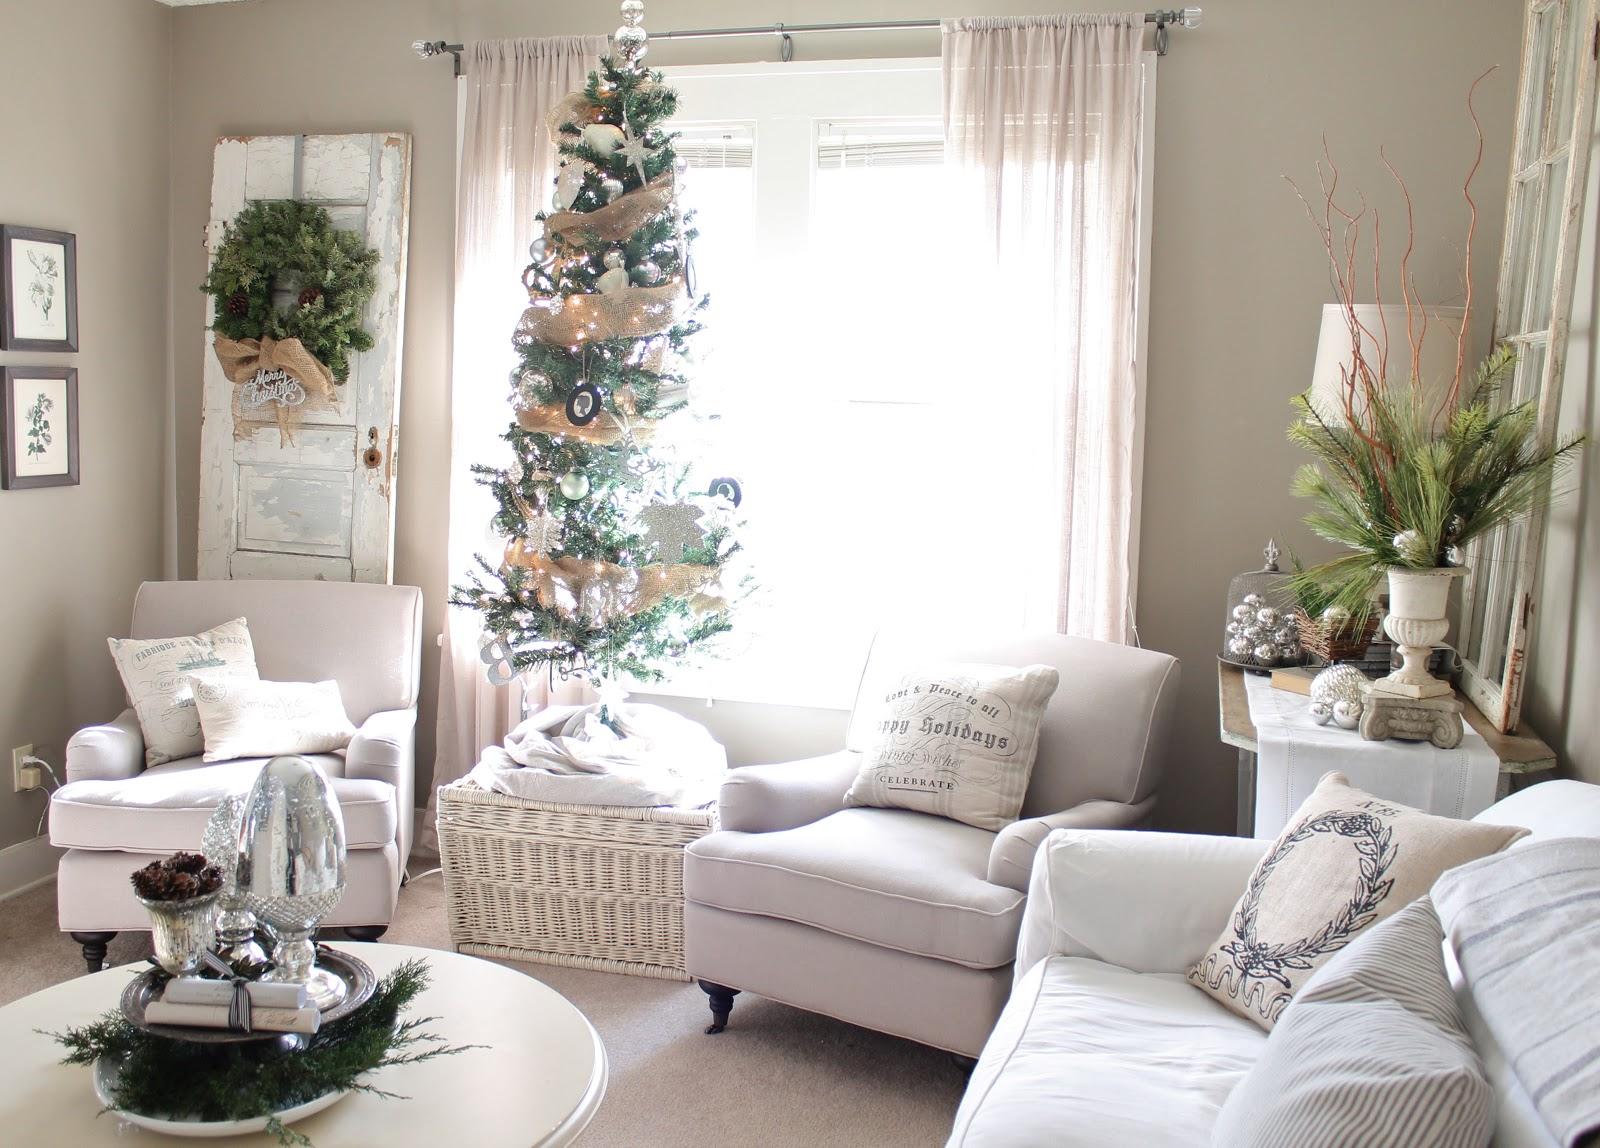 Christmas Living Room Decorating Ideas Decor 12th and white: our christmas living room part 2